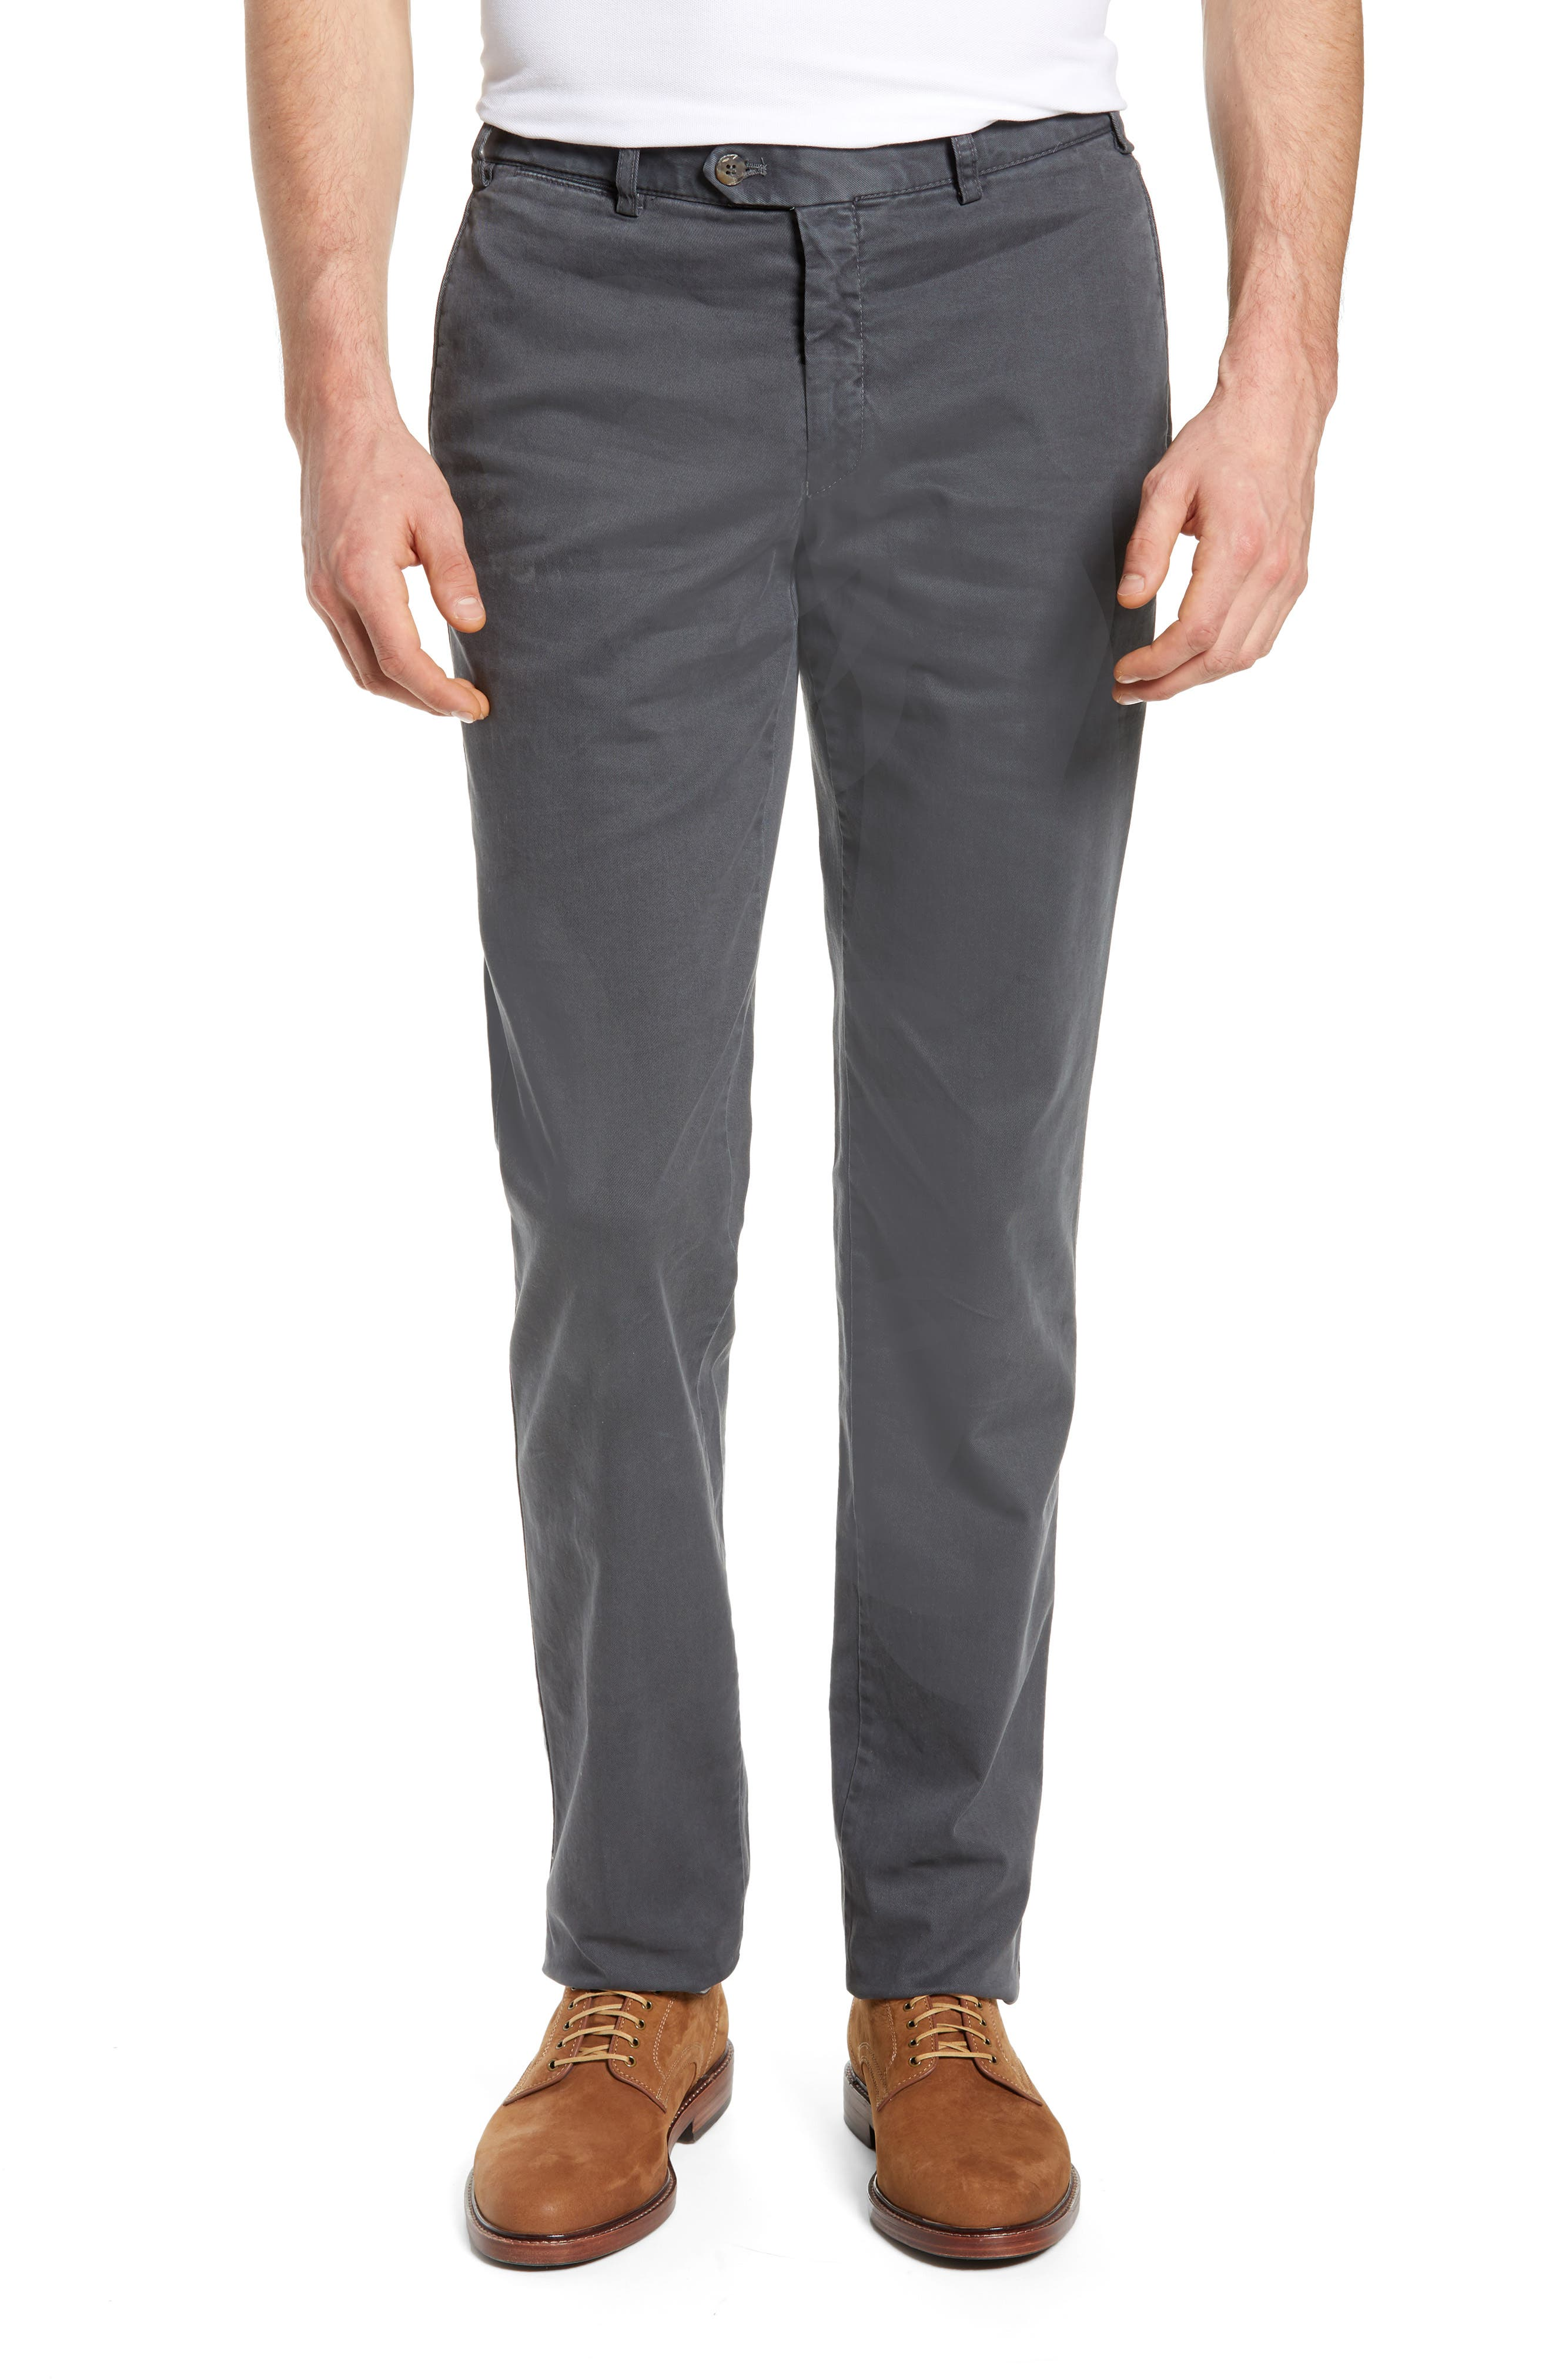 Pero Trim Fit Flat Front Chino Trousers,                             Main thumbnail 1, color,                             GREY